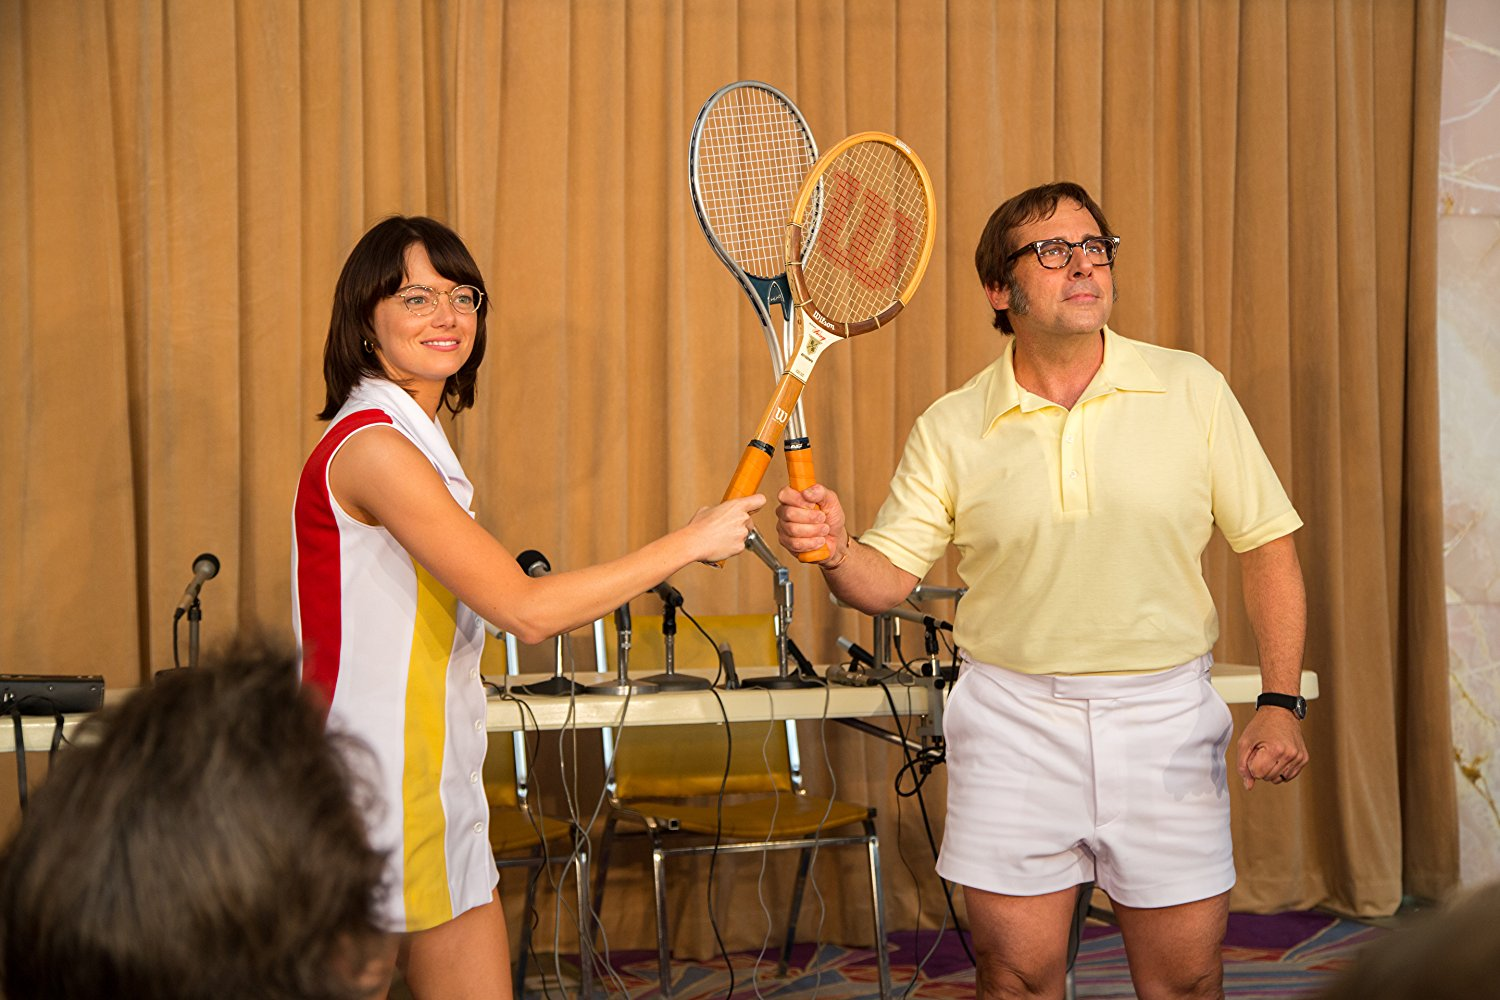 'Battle of the Sexes' serves up a fresh take on the sports film